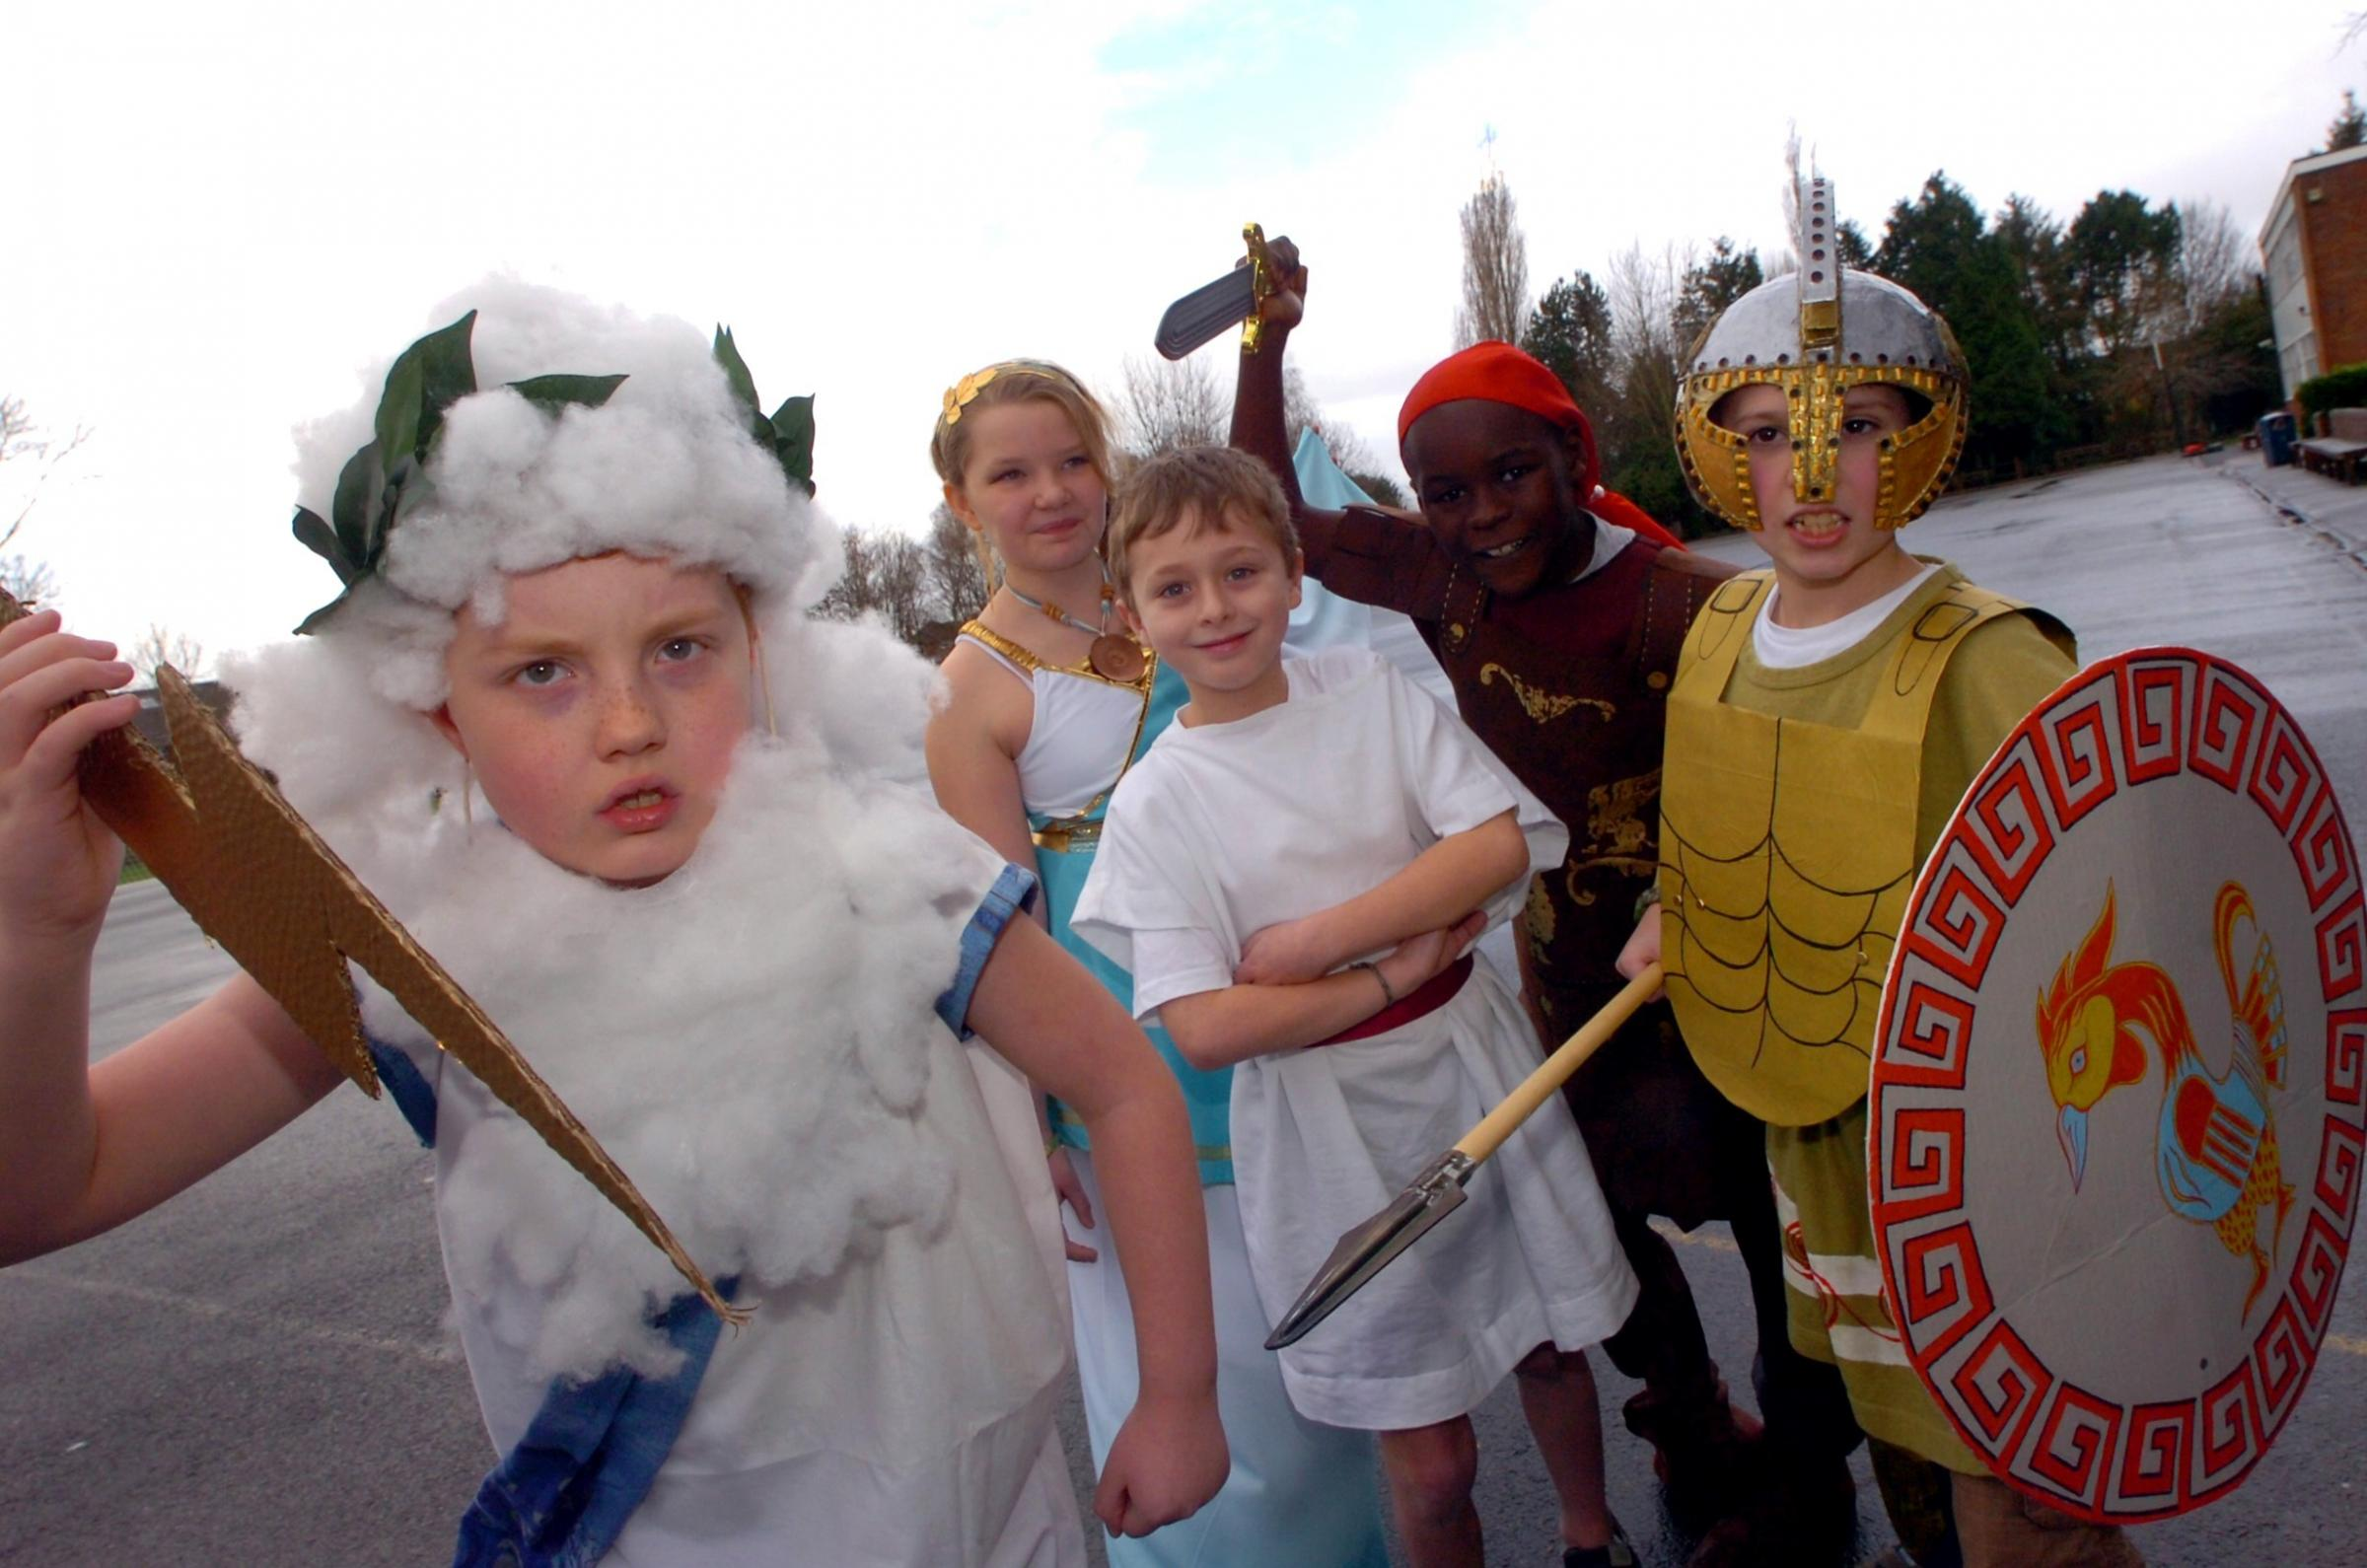 BMM051403Witton middle school ancient greece day: Connor Harris 9, Lucy Middleton 9, Samuel Bradburn, 9, Matthew Daniels 9 and Sal Silwimba, ten, (3679746)